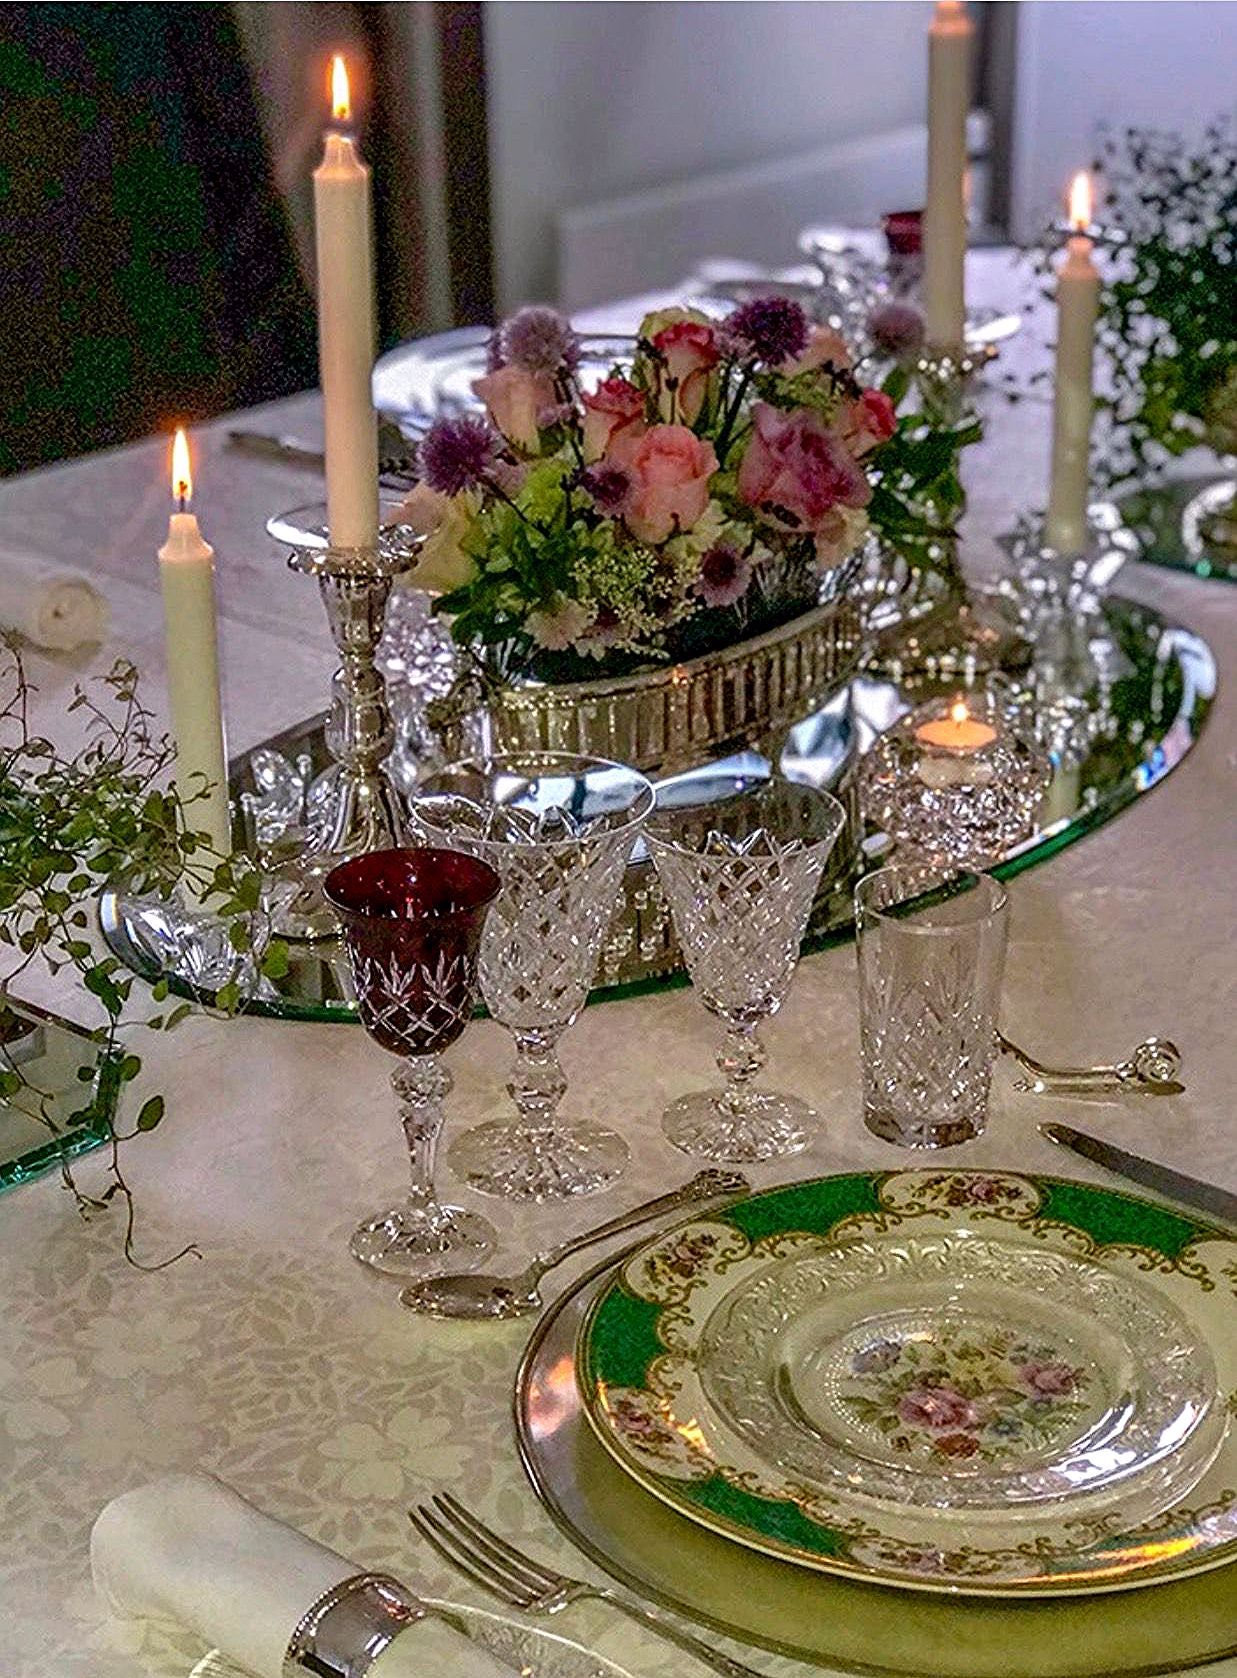 Pin By Ronald Cormier On Nizak Stol In 2020 Dinner Table Setting Dining Room Table Centerpieces Beautiful Table Settings